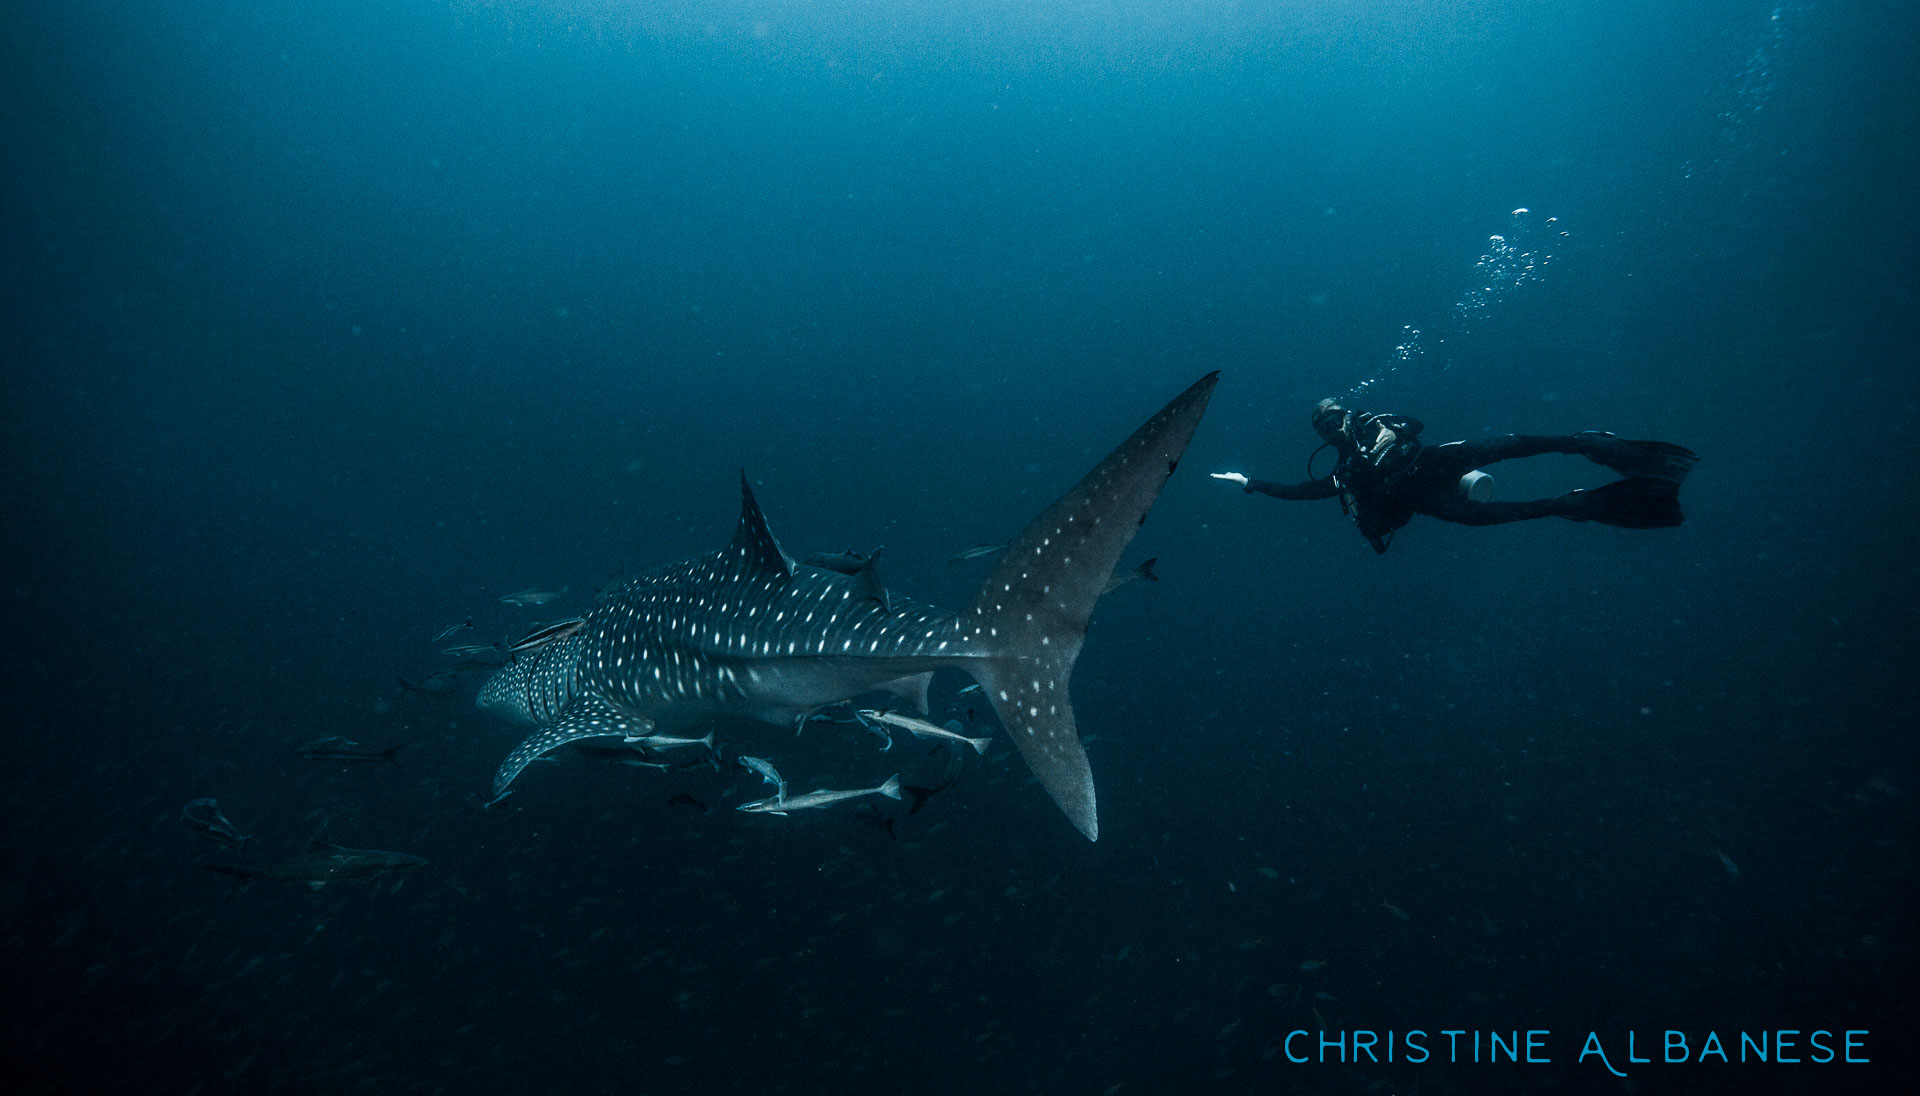 I was a lucky girl in 2015 and saw 5 whale sharks over the course of the year (AND had my camera for each encounter)! This was the last one I saw in November and Josh is such a lucky guy to have gotten himself a photo with one! He was so happy he cried 😂  When will I get a photo of myself with such an awesome creature?! 😤 #photographerproblems